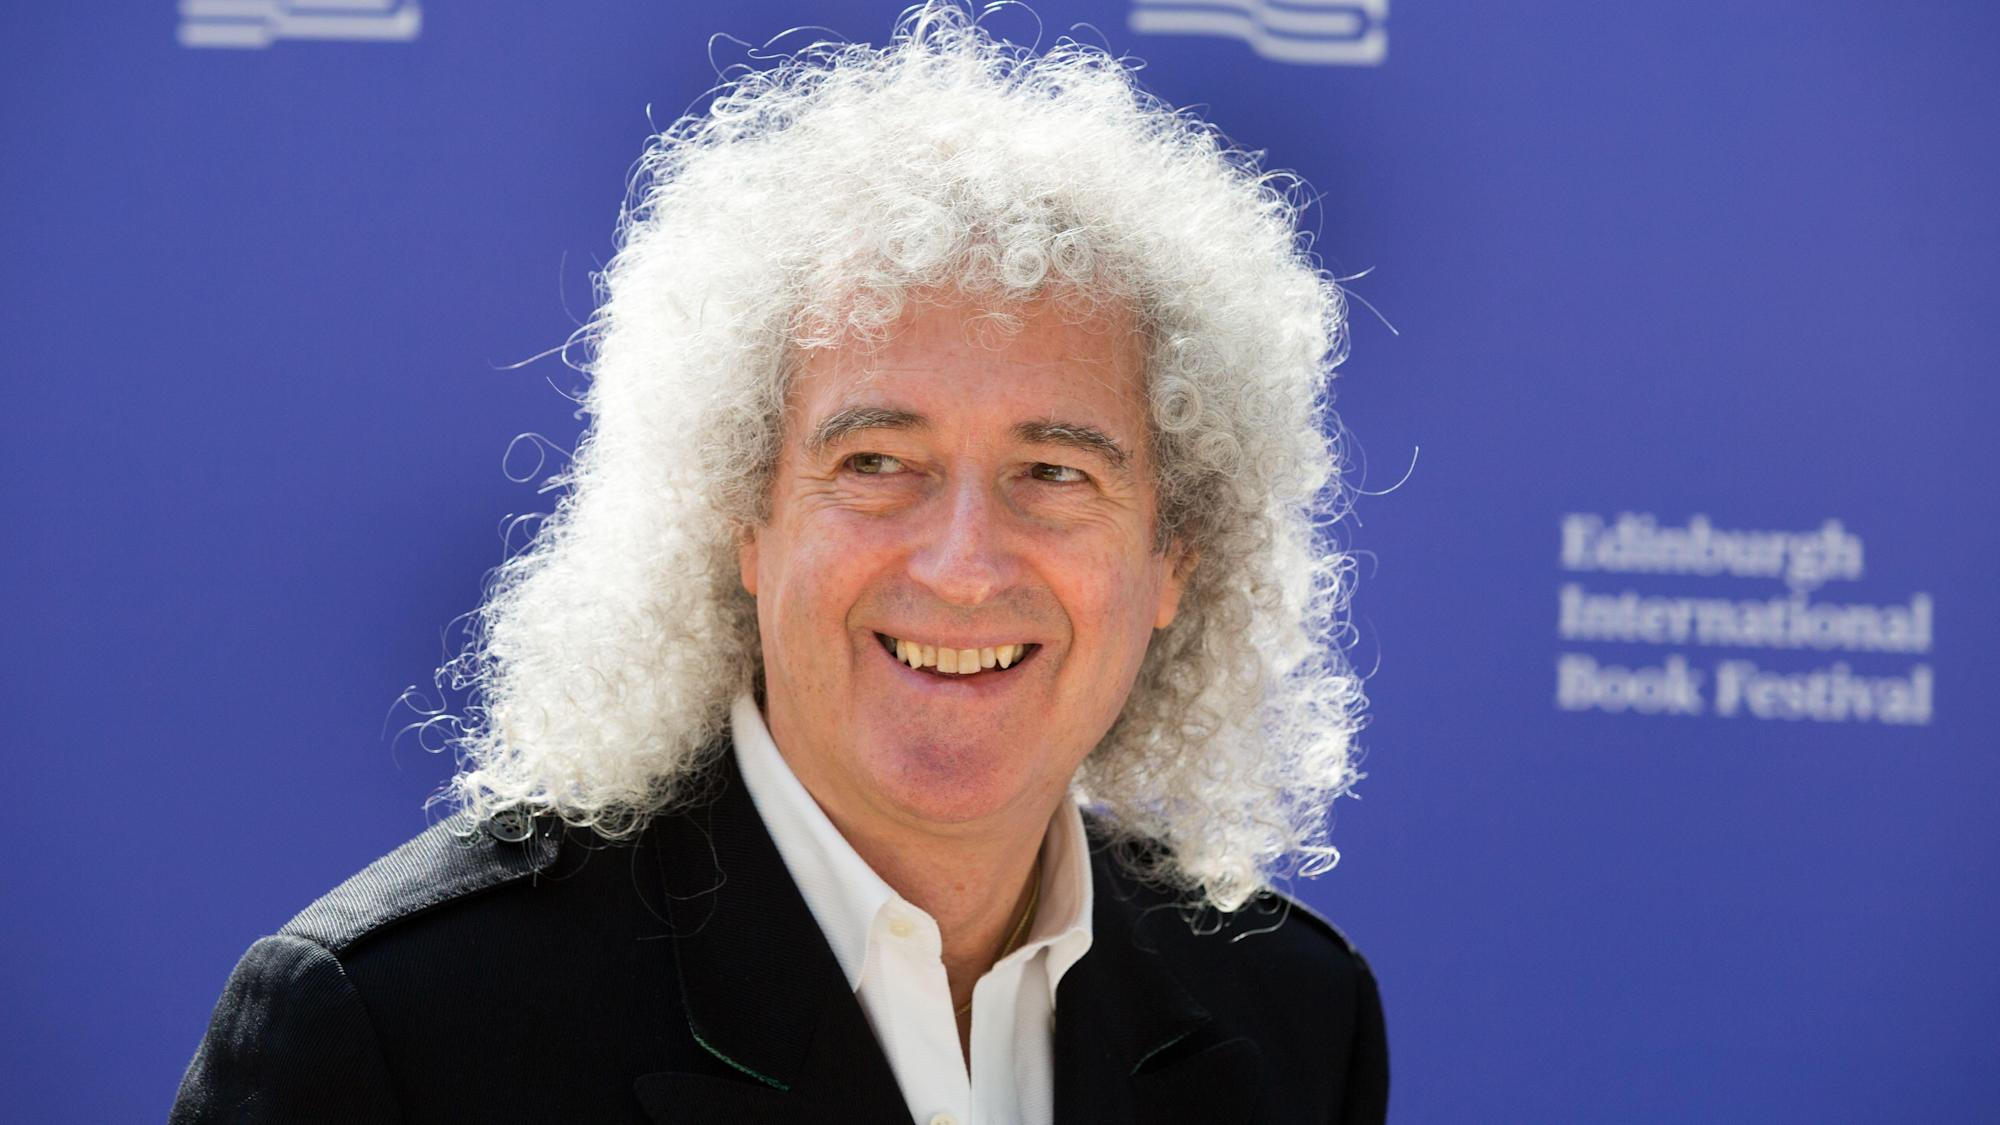 Brian May shares images of 'devastation' in his flooded London home